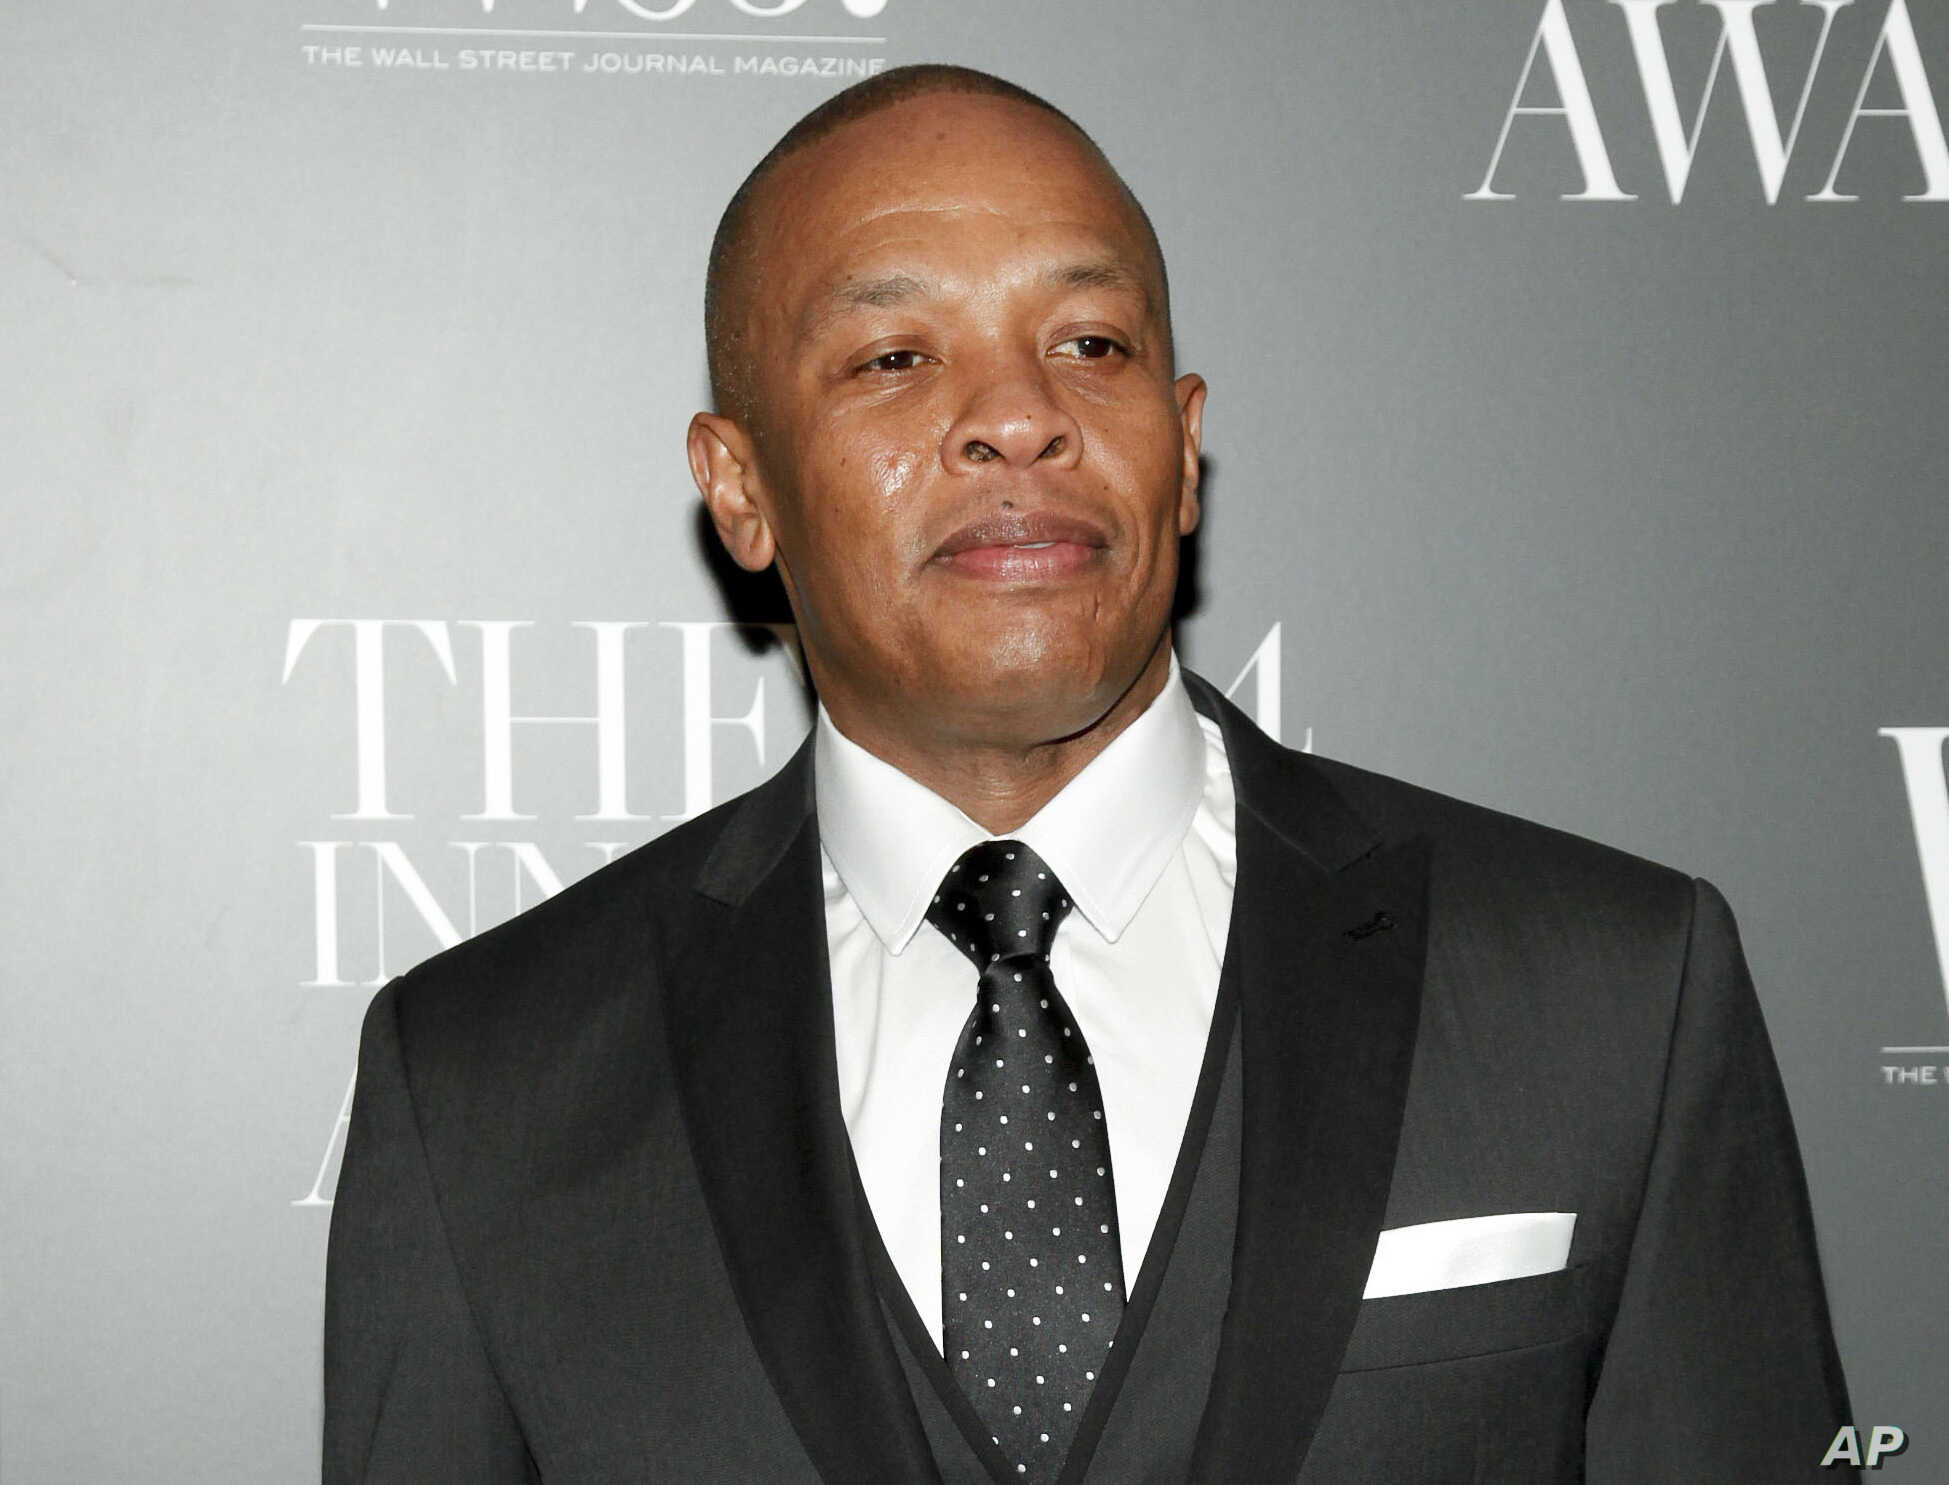 FILE - In this Nov. 5, 2014 file photo, Dr. Dre attends the WSJ. Magazine 2014 Innovator Awards at MoMA in New York. Dr. Dre has lost his trademark fight against Dr. Drai. The rapper objected to the trademark application of the Pennsylvania gynecolog